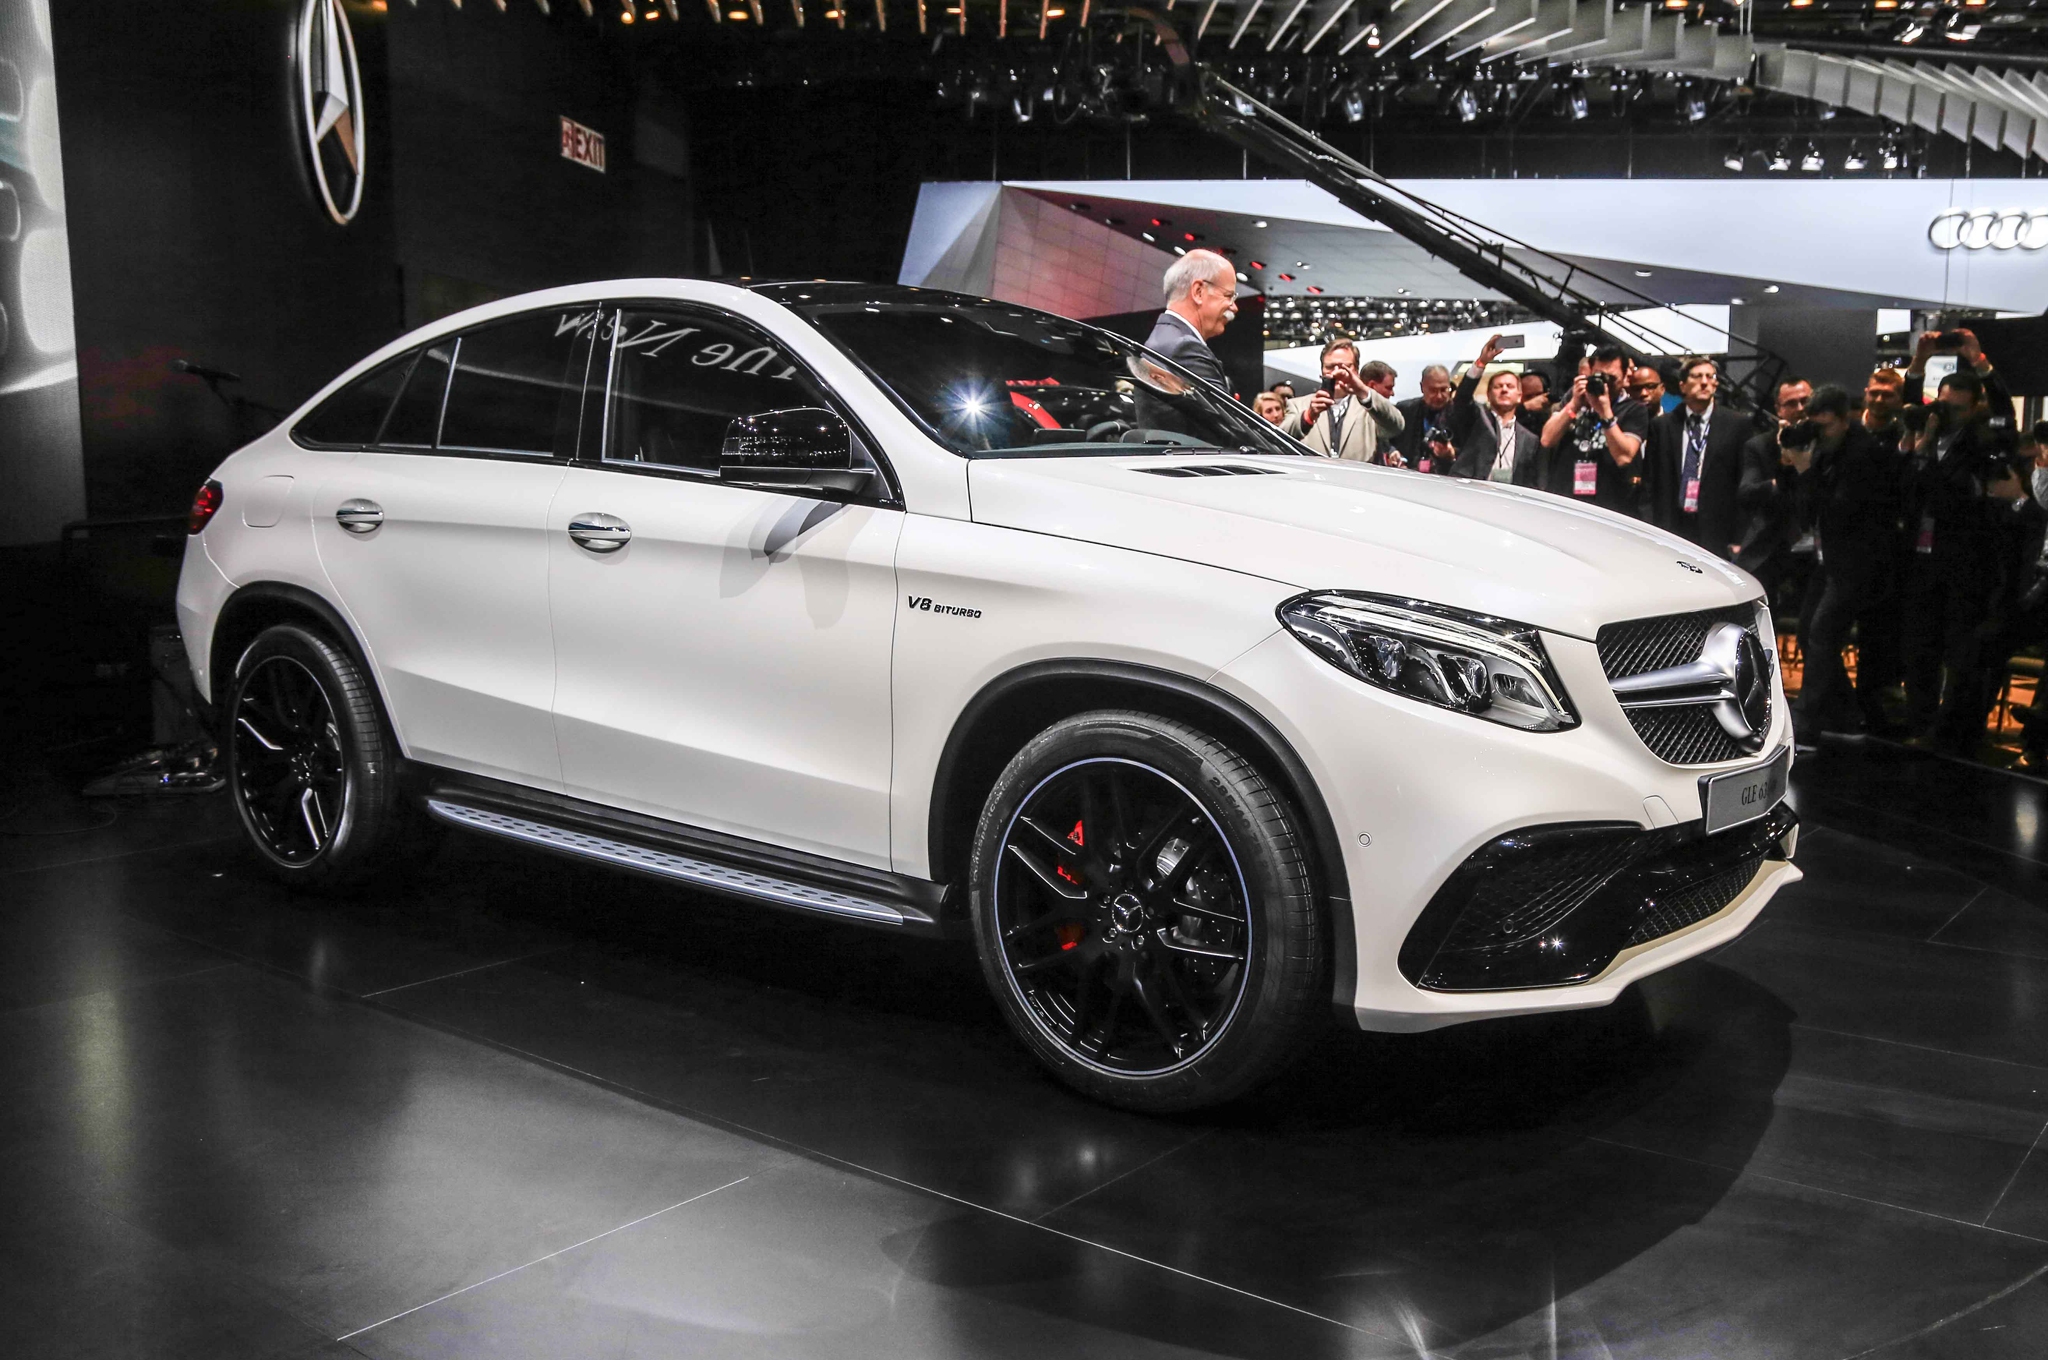 2016 Mercedes-Benz GLE63 S Coupe 4Matic Rolls Into Detroit - Motor Trend